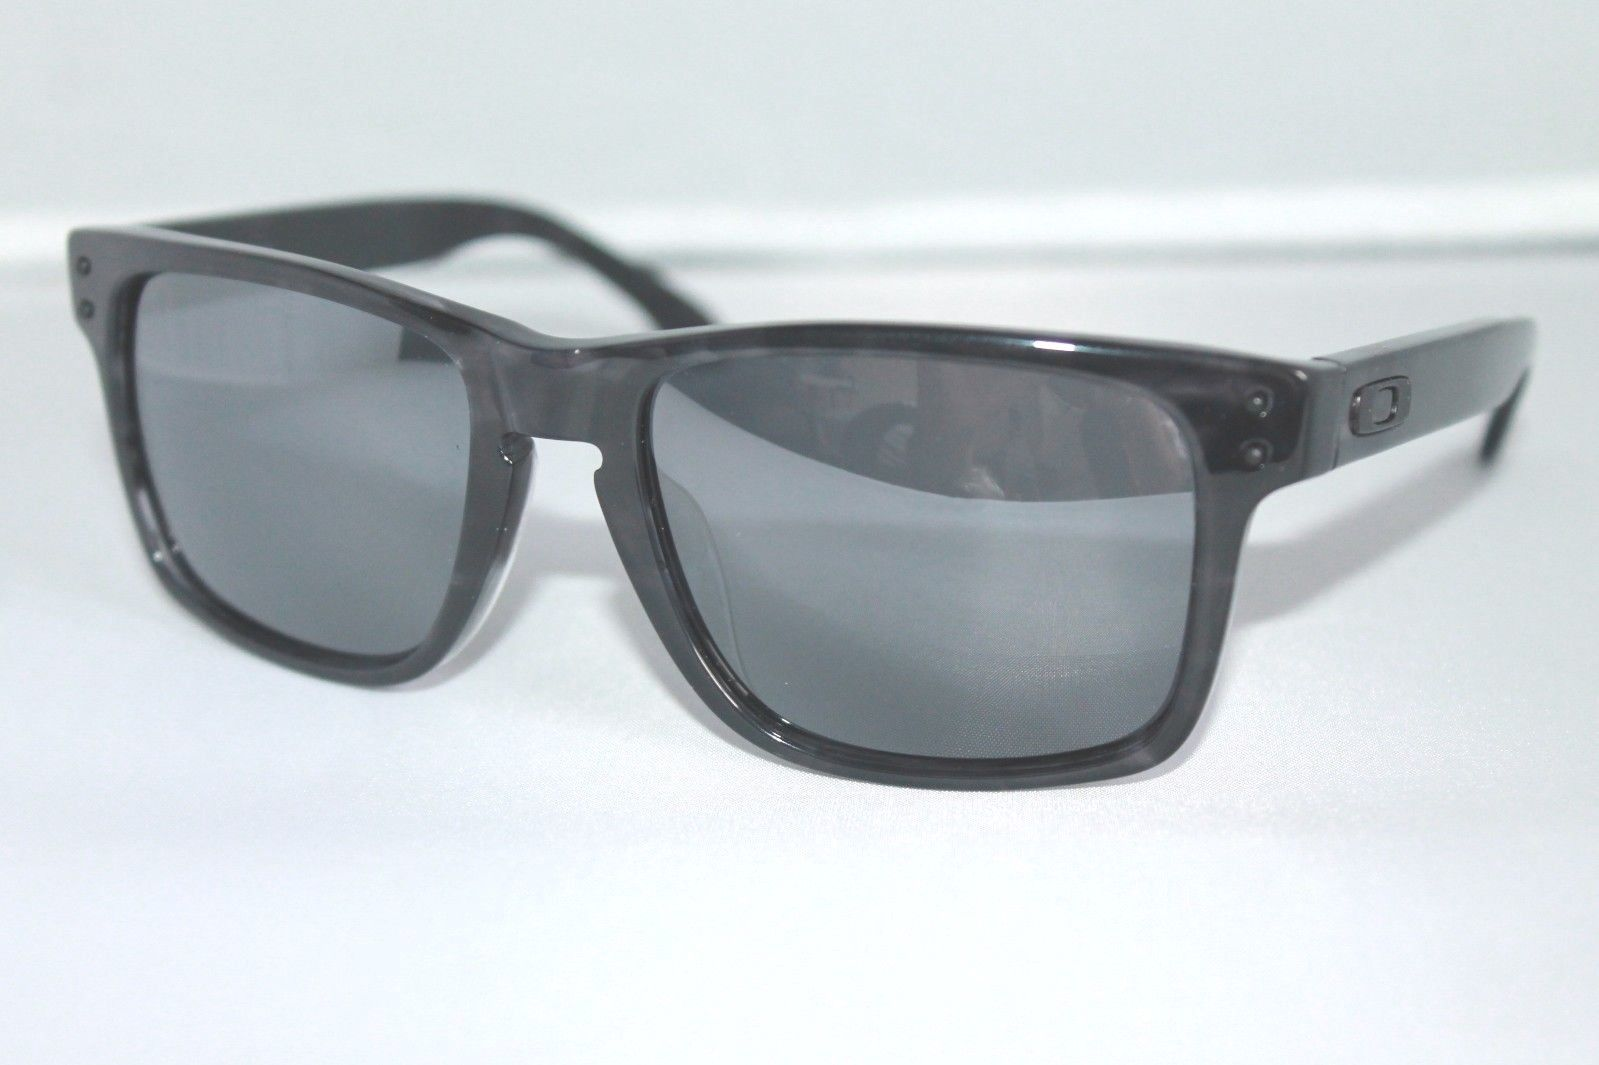 7623be83935 Oakley Holbrook LX Sunglasses OO2048-02 Dark and 5 similar items. 57